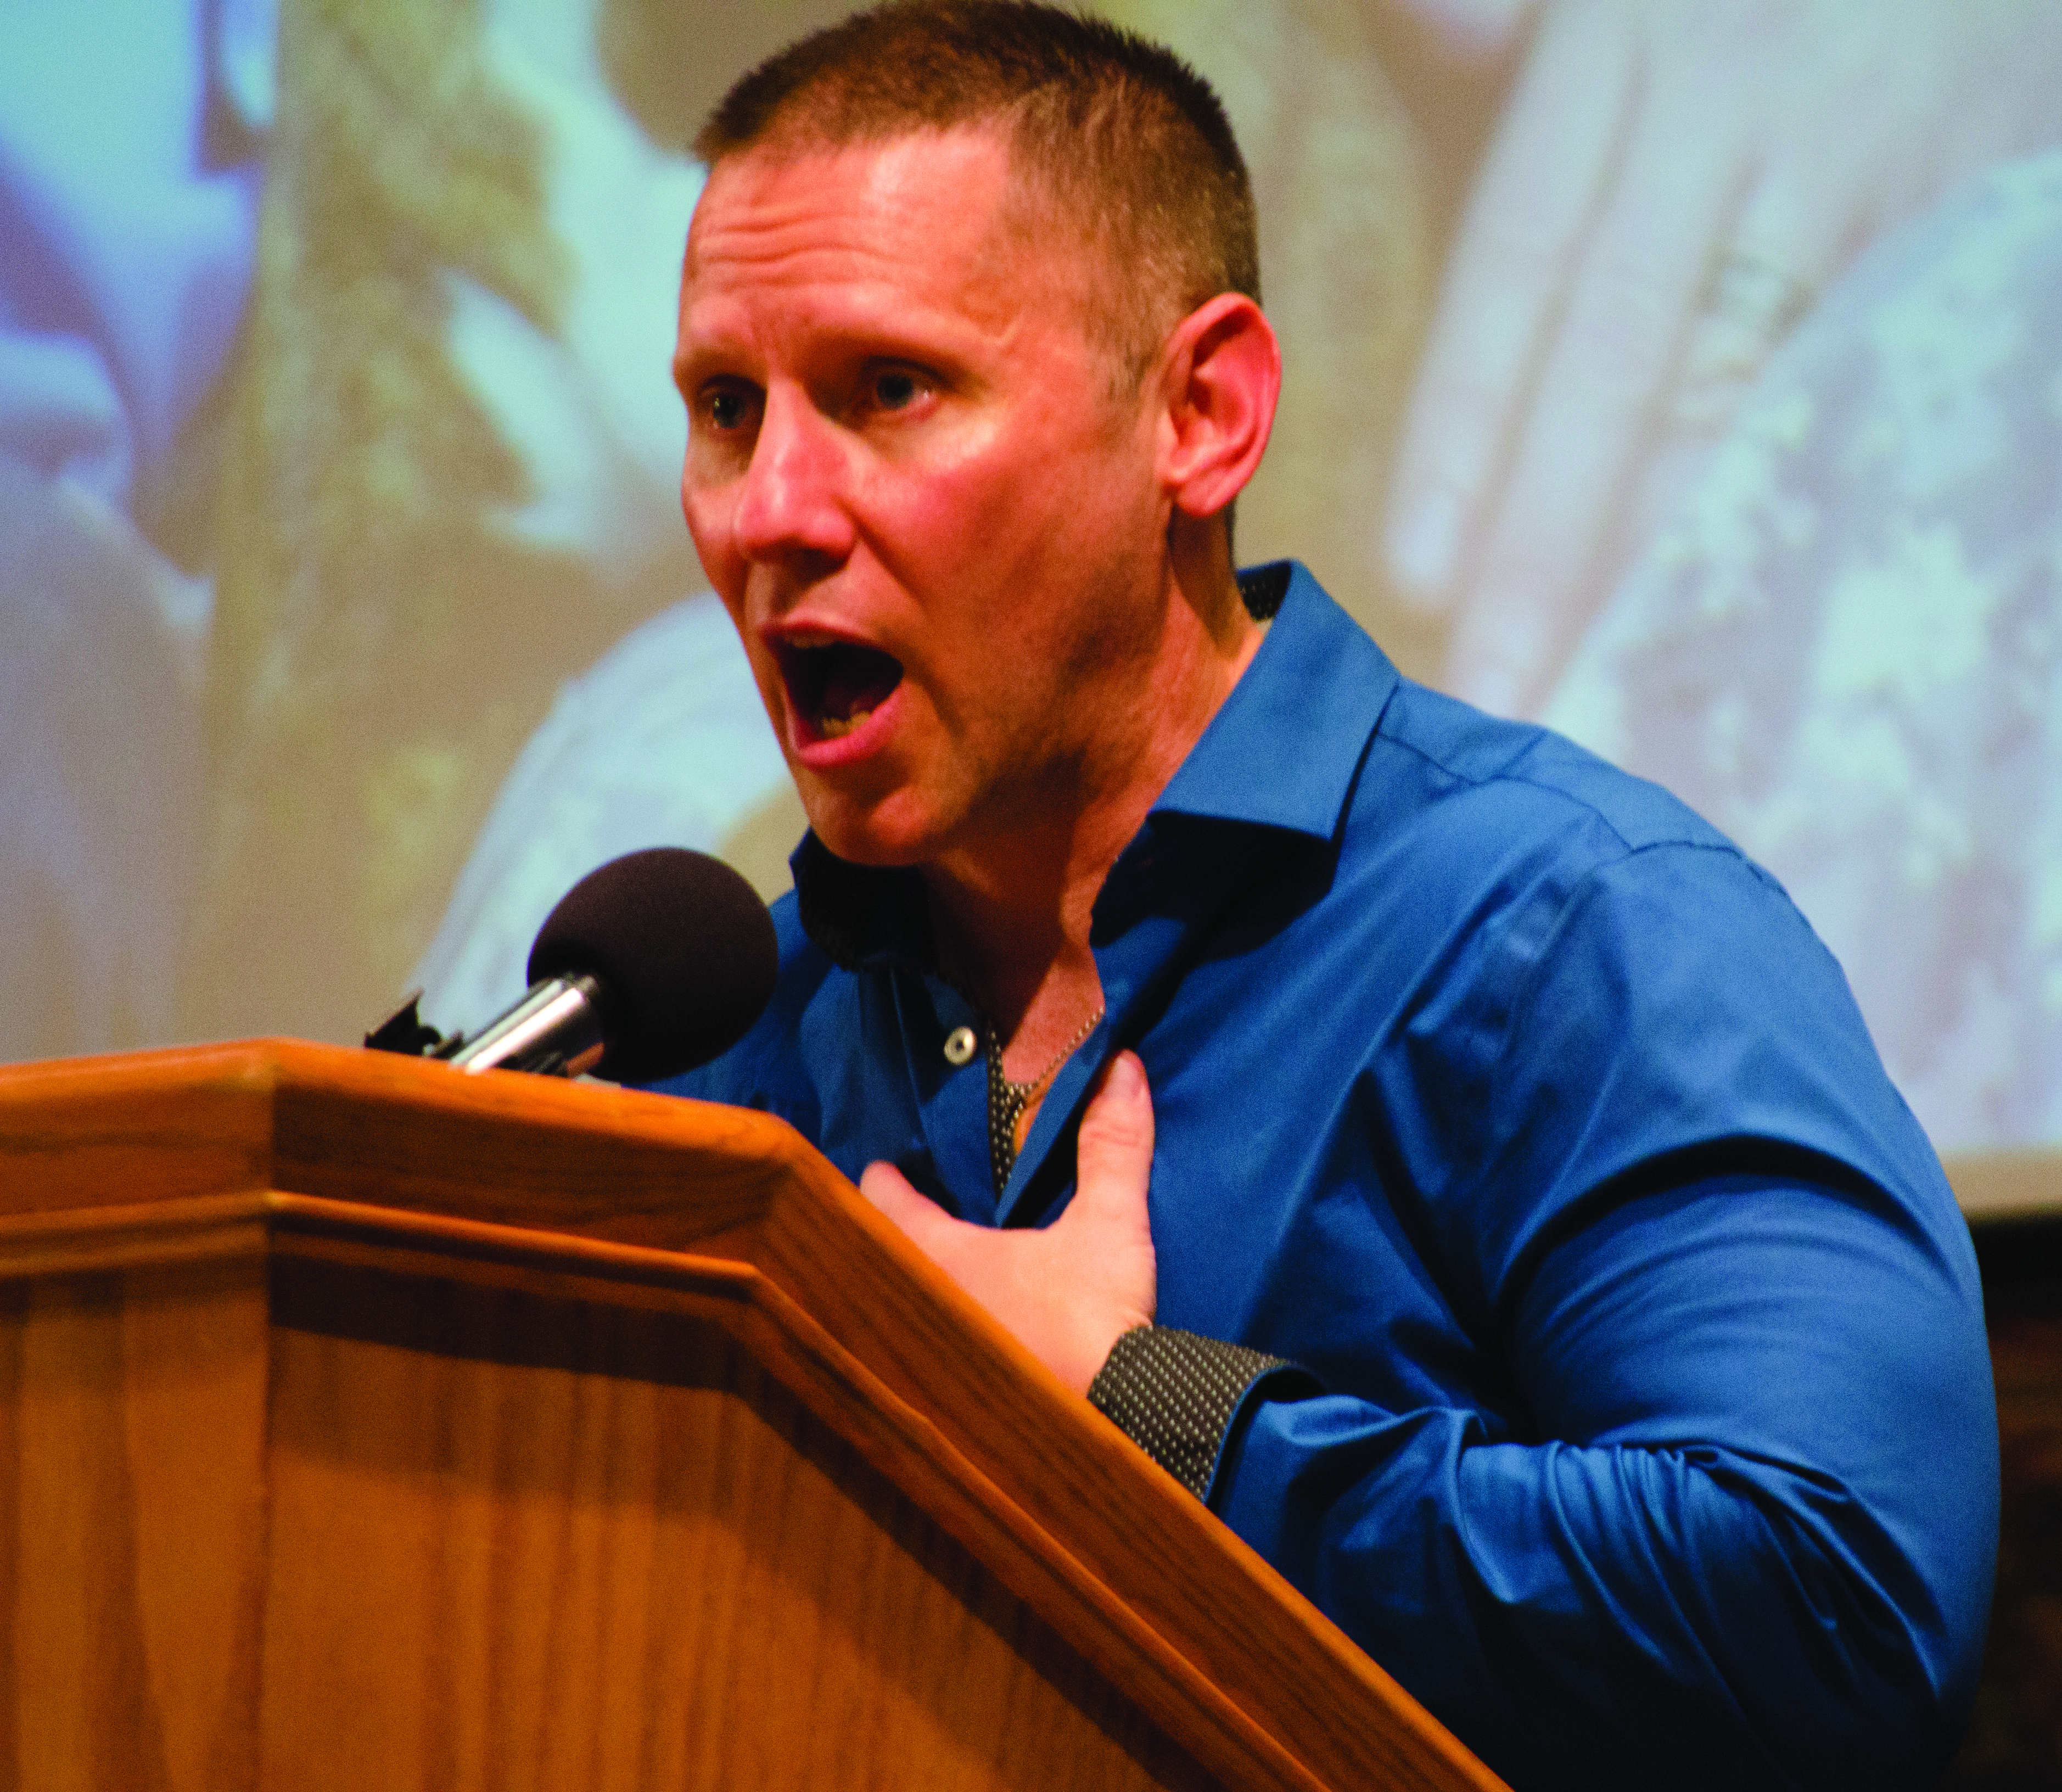 U.S. Army veteran Steven Snyder-Hill visited campus Friday to share his experiences as a gay soldier and the hardships he and his partner faced during the Don't Ask Don't Tell policy. photo by Graig Graziosi/The Jambar.